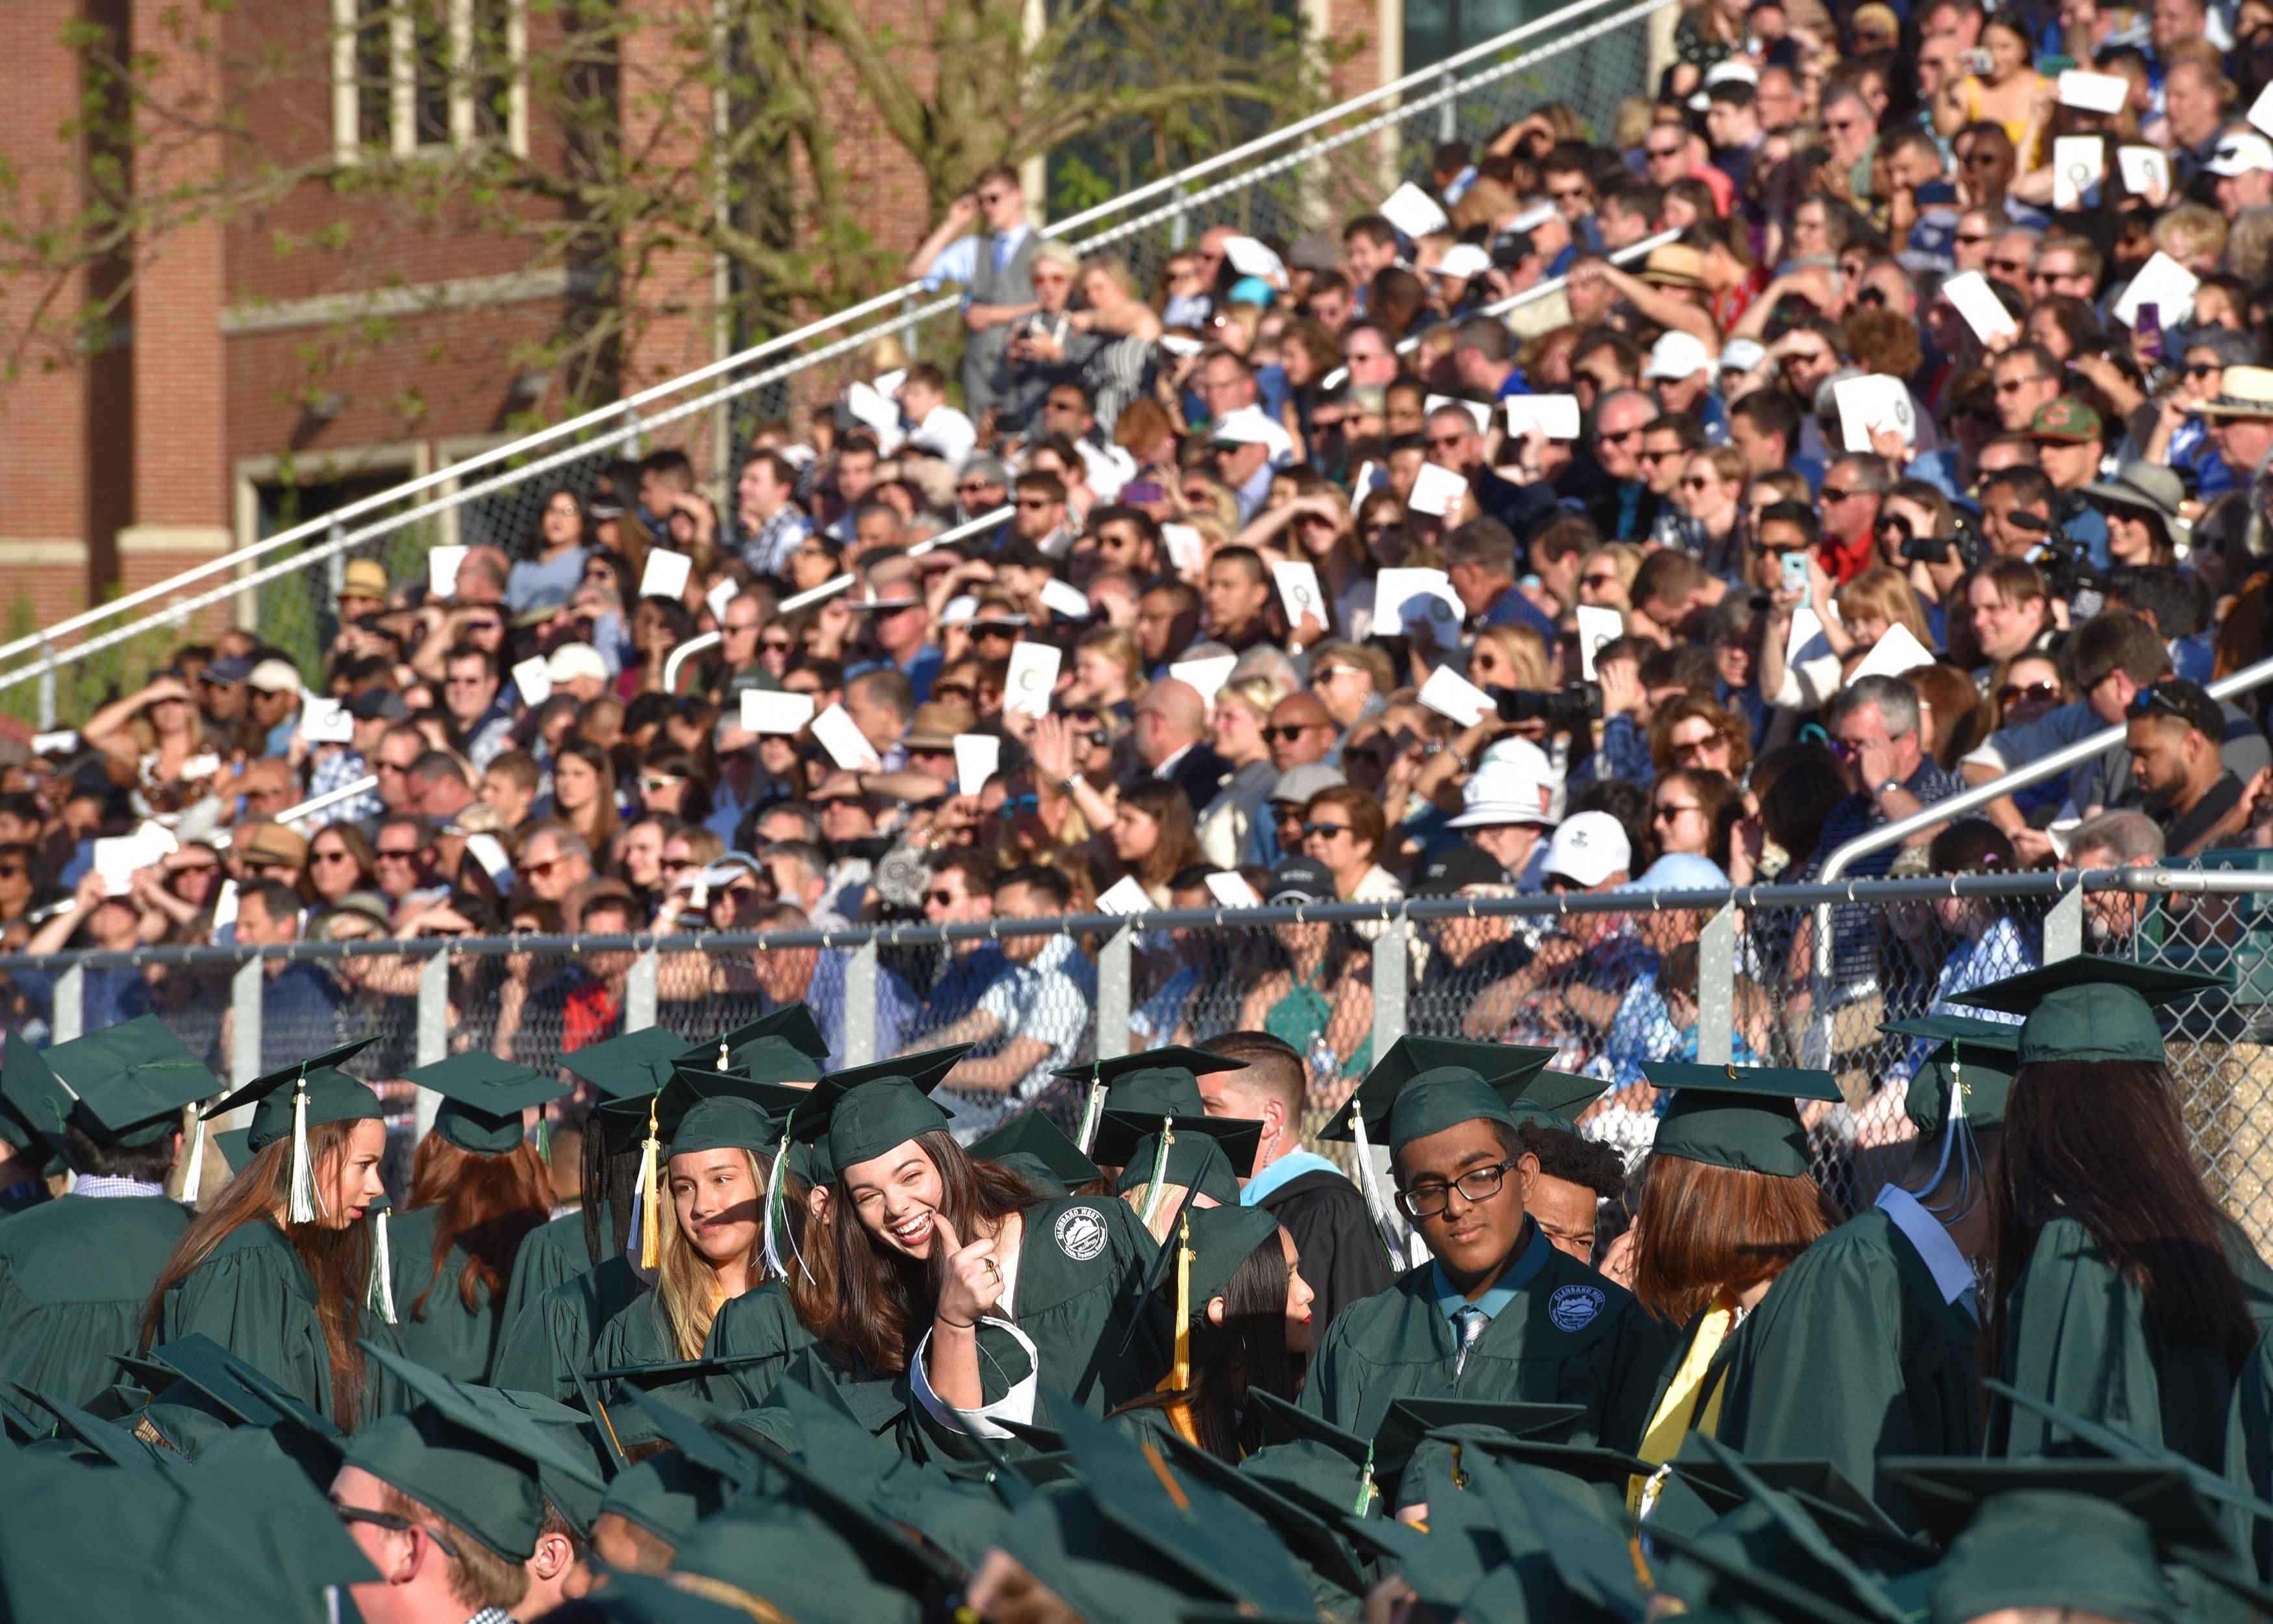 Almost 600 graduates and their families filled the football stadium at the Glenbard West High School graduation ceremony Thursday at the school in Glen Ellyn.